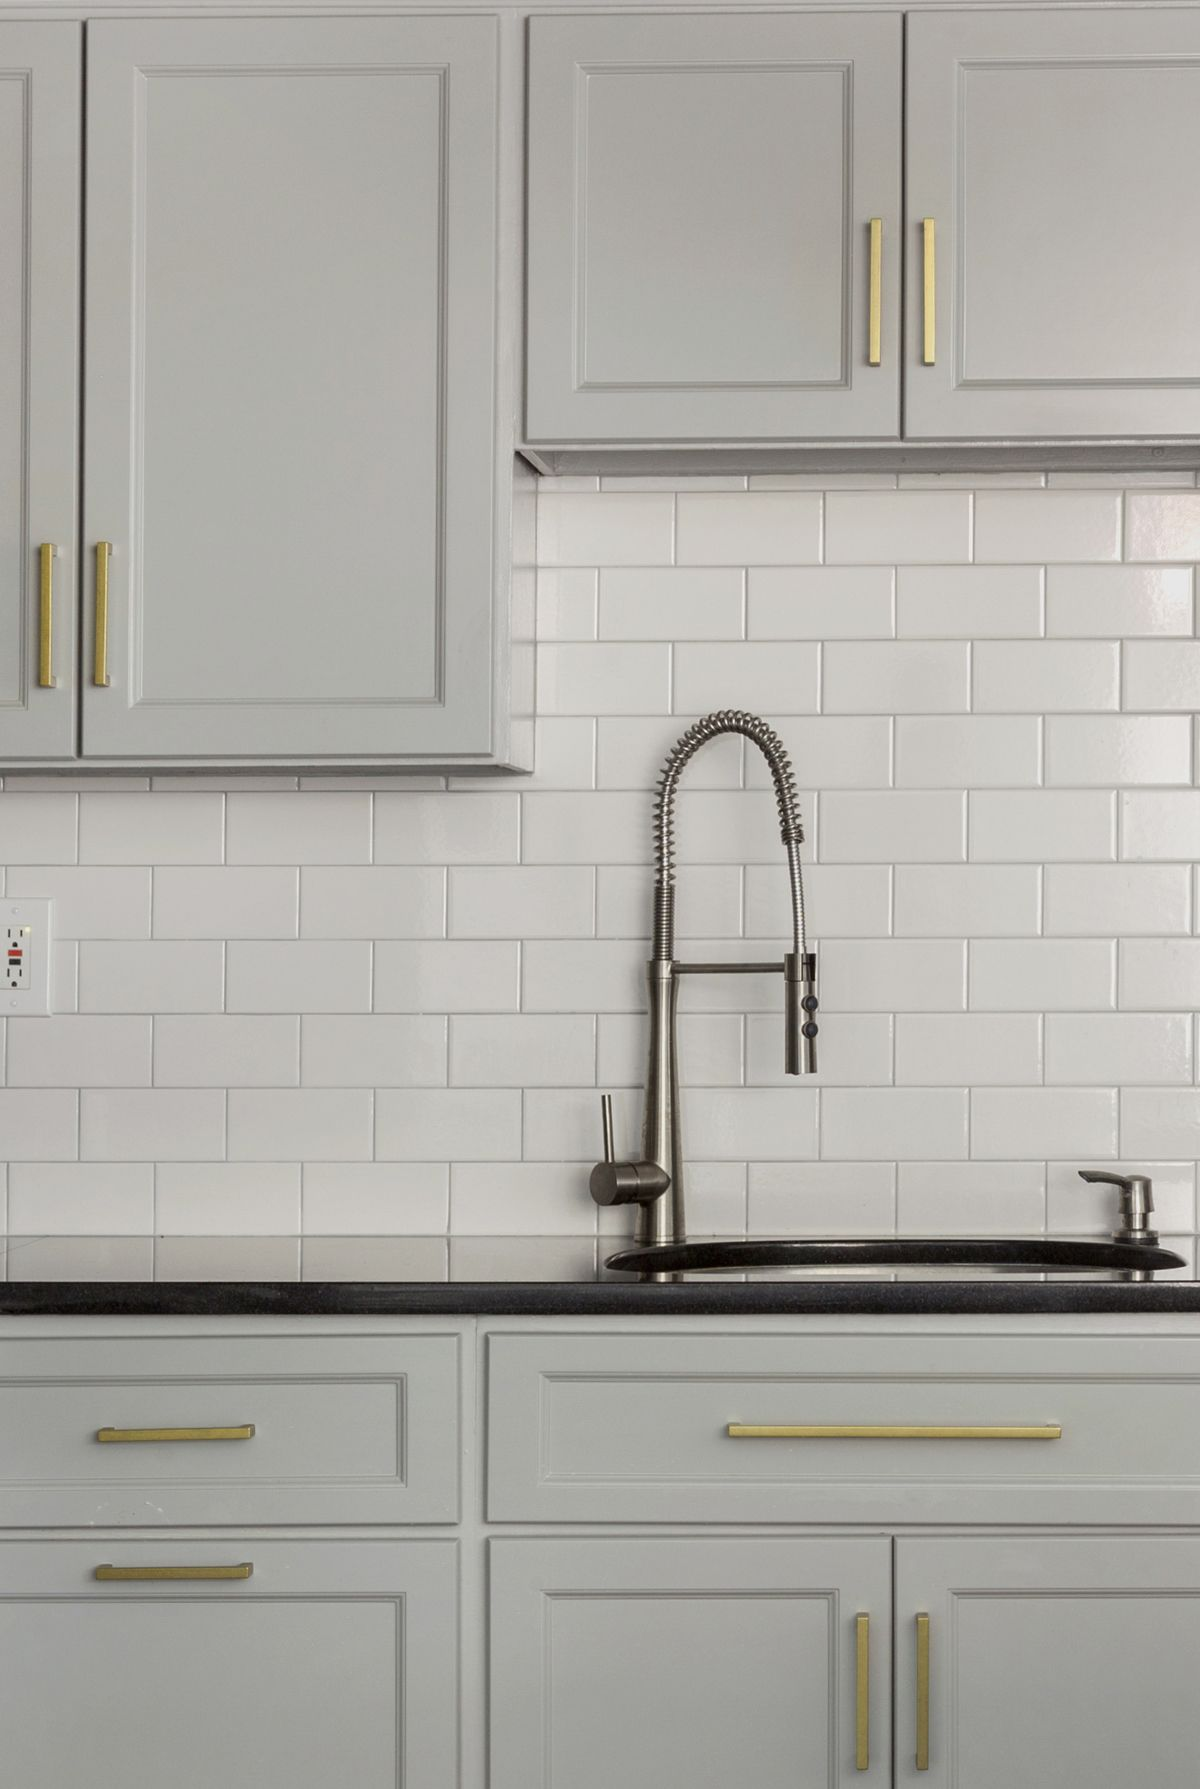 Brass modern cabinet hardware gray cabinets black White subway tile